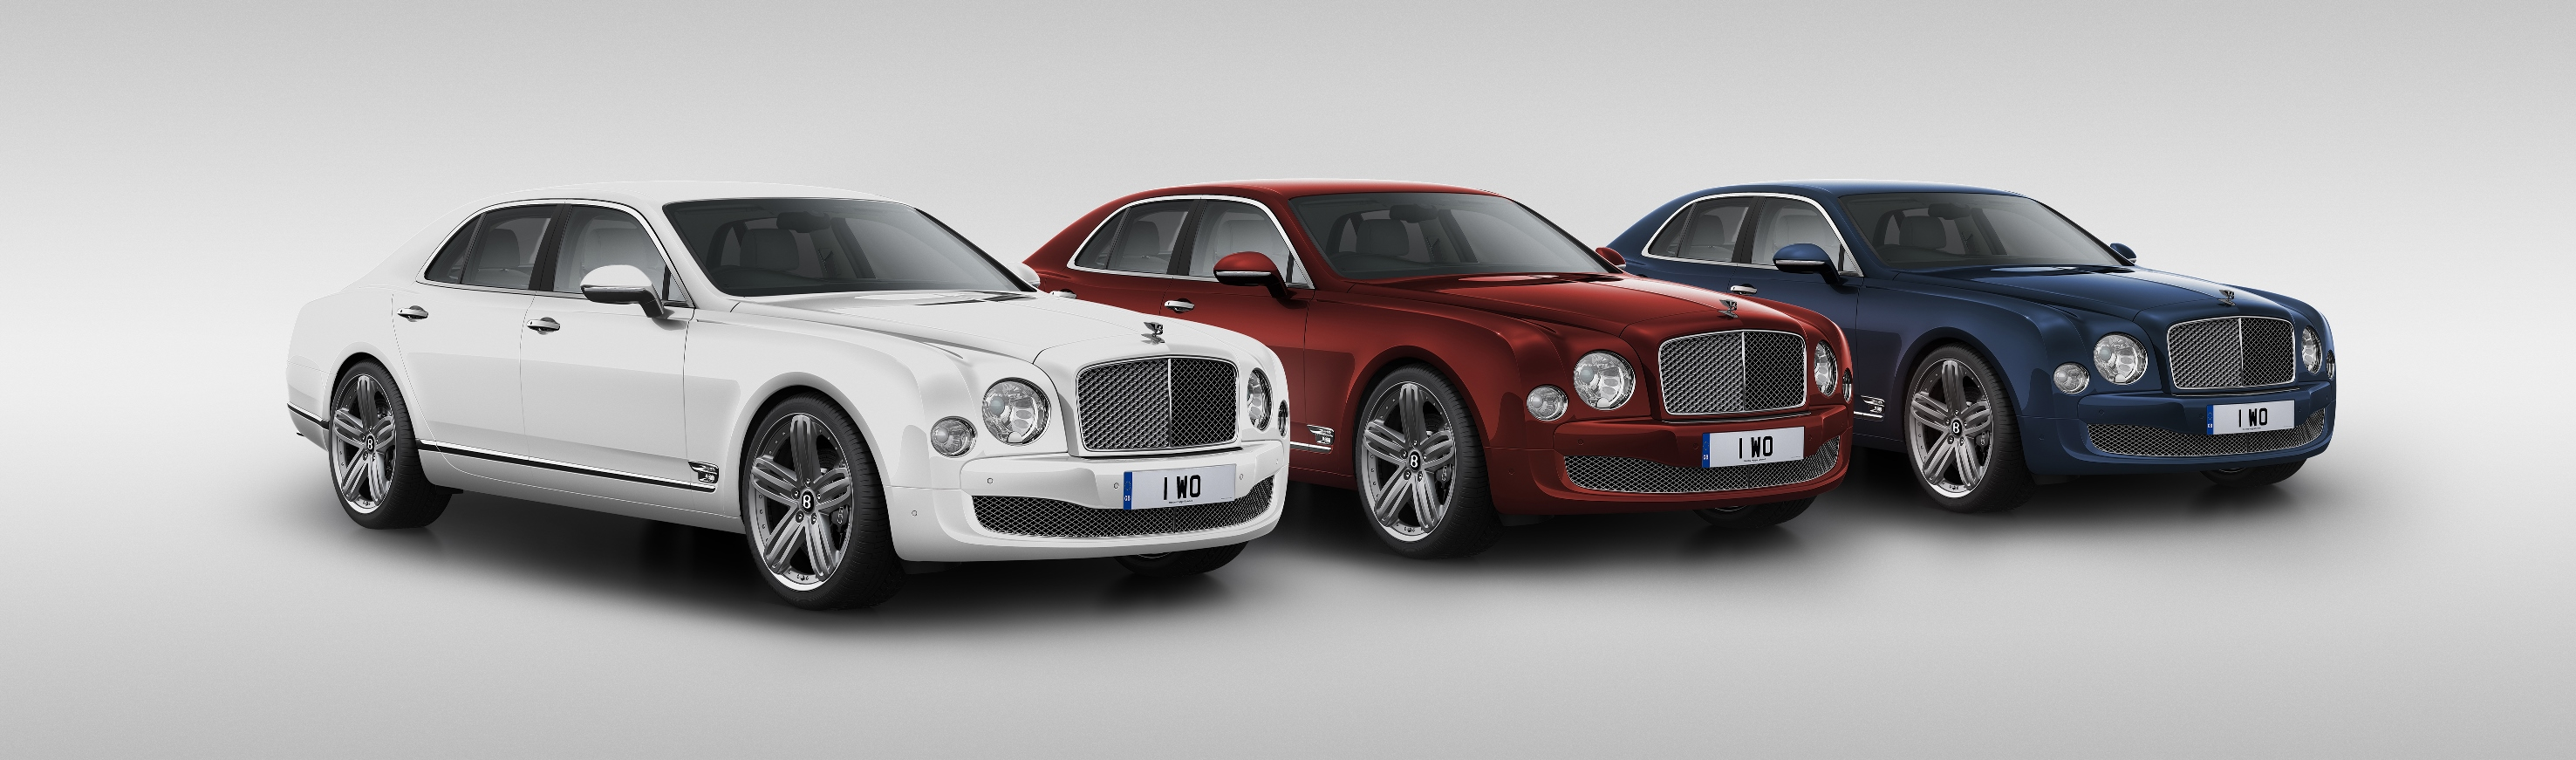 Bentley Mulsanne 95 Edition thumb